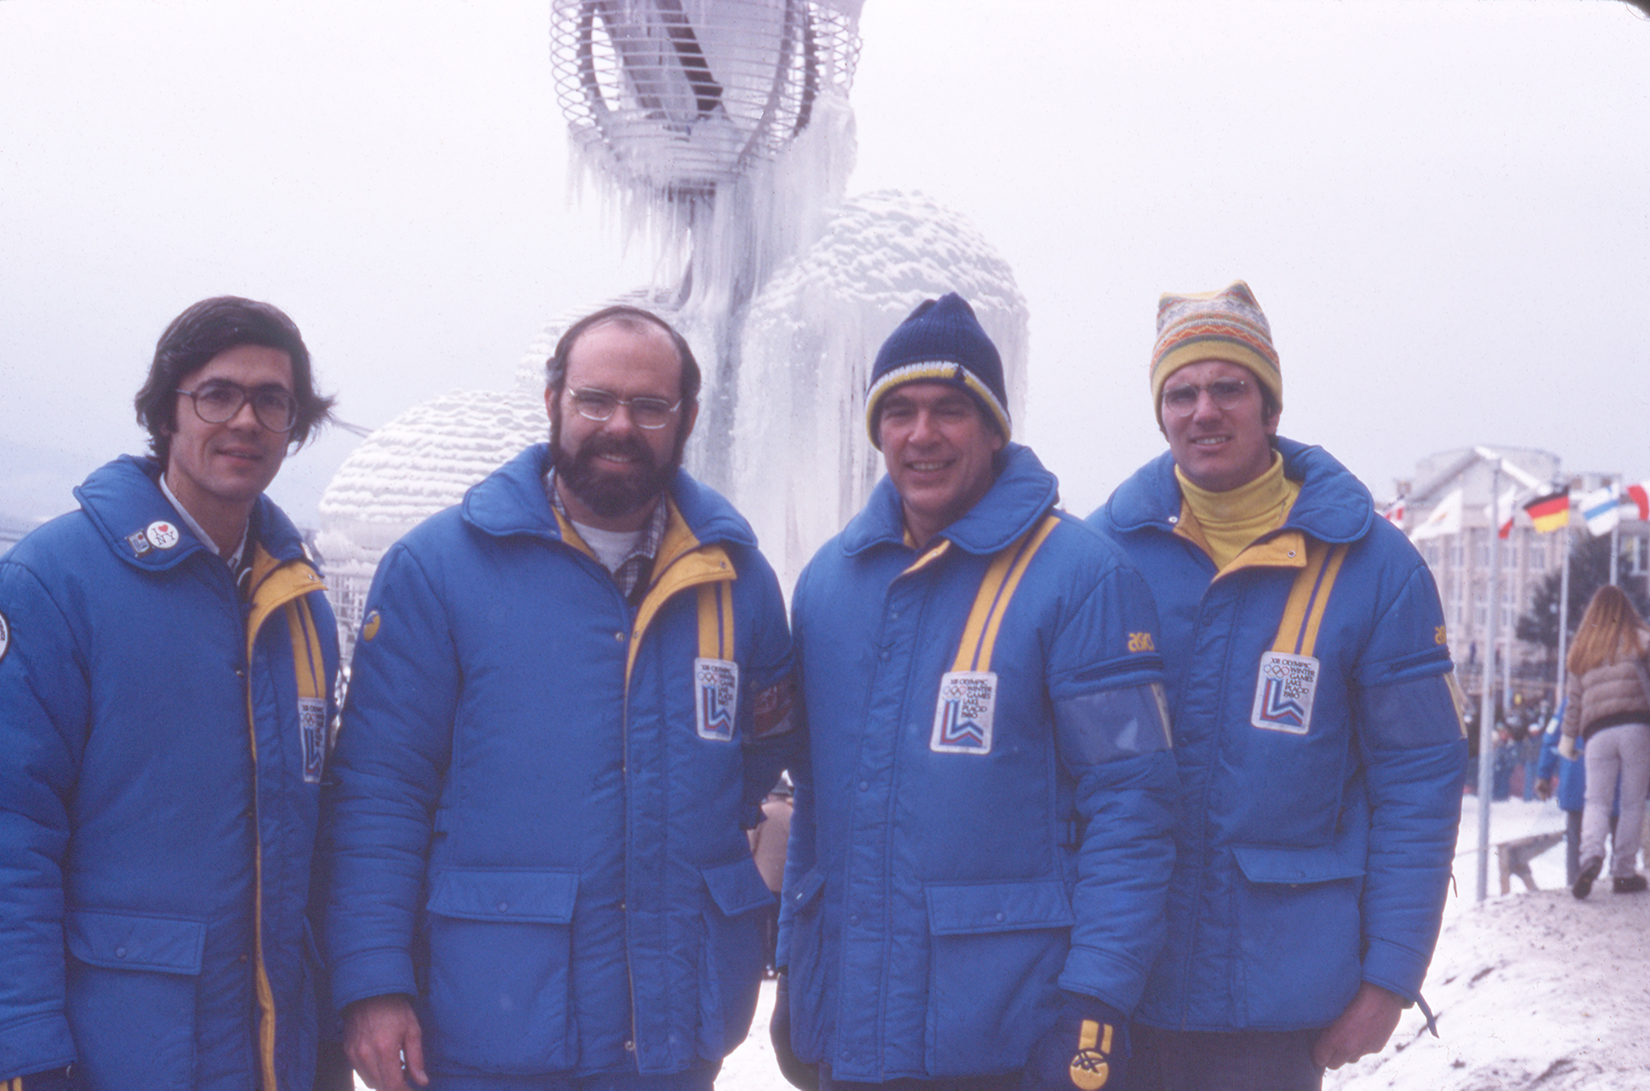 Four men wearing blue snowsuits in Lake Placid, NY